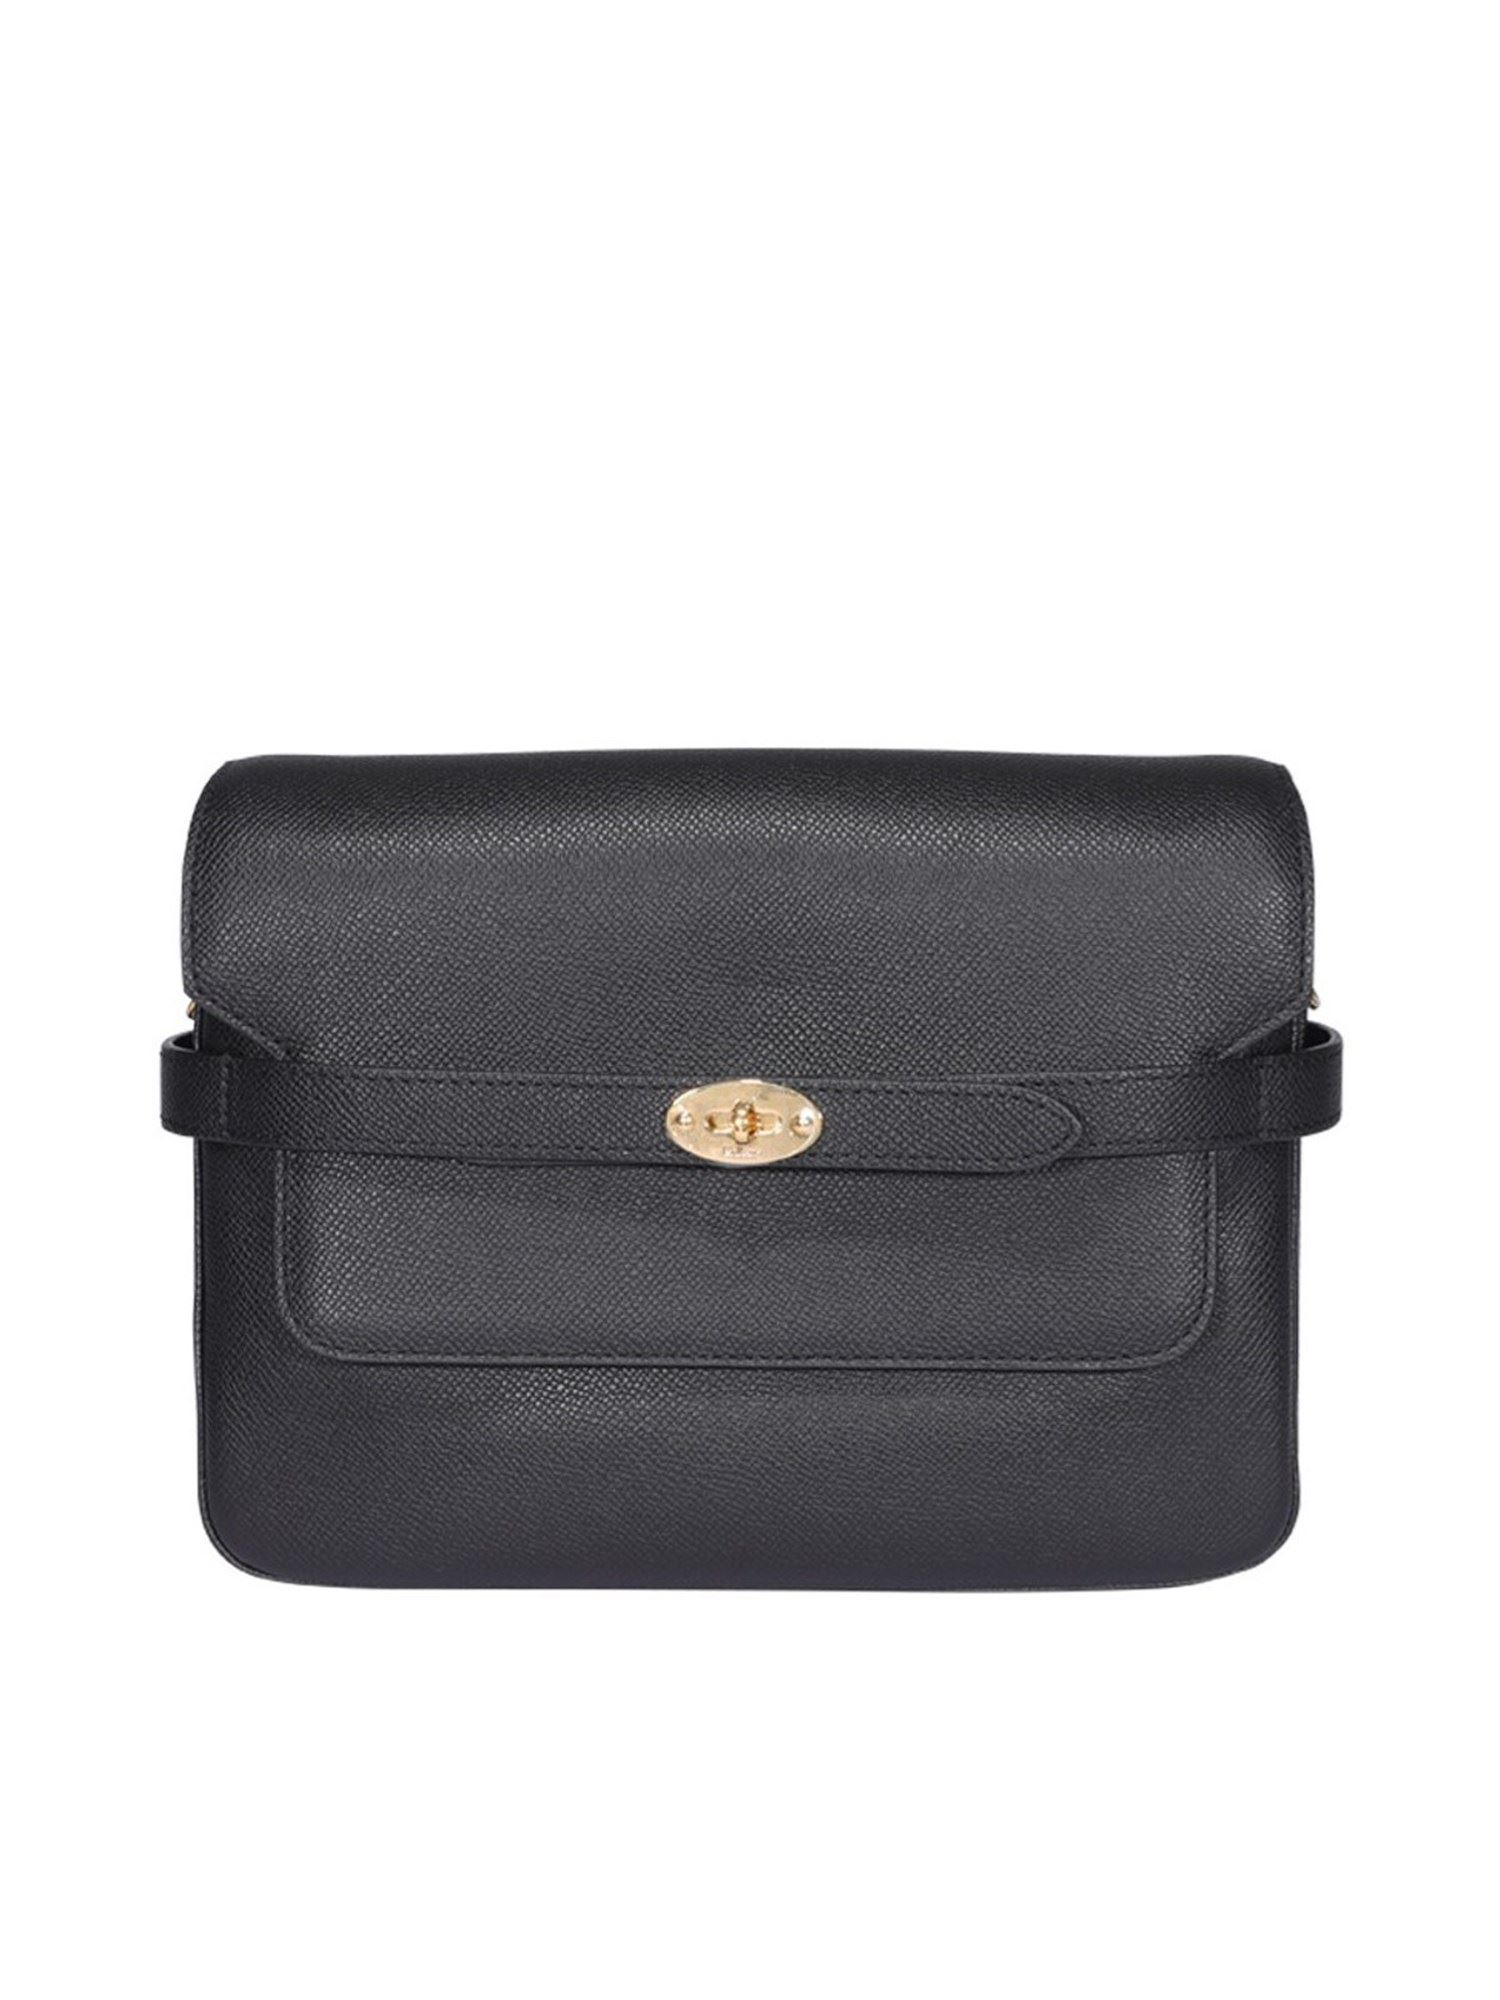 Mulberry BAYSWATER BLACK LEATHER CROSSBODY BAG